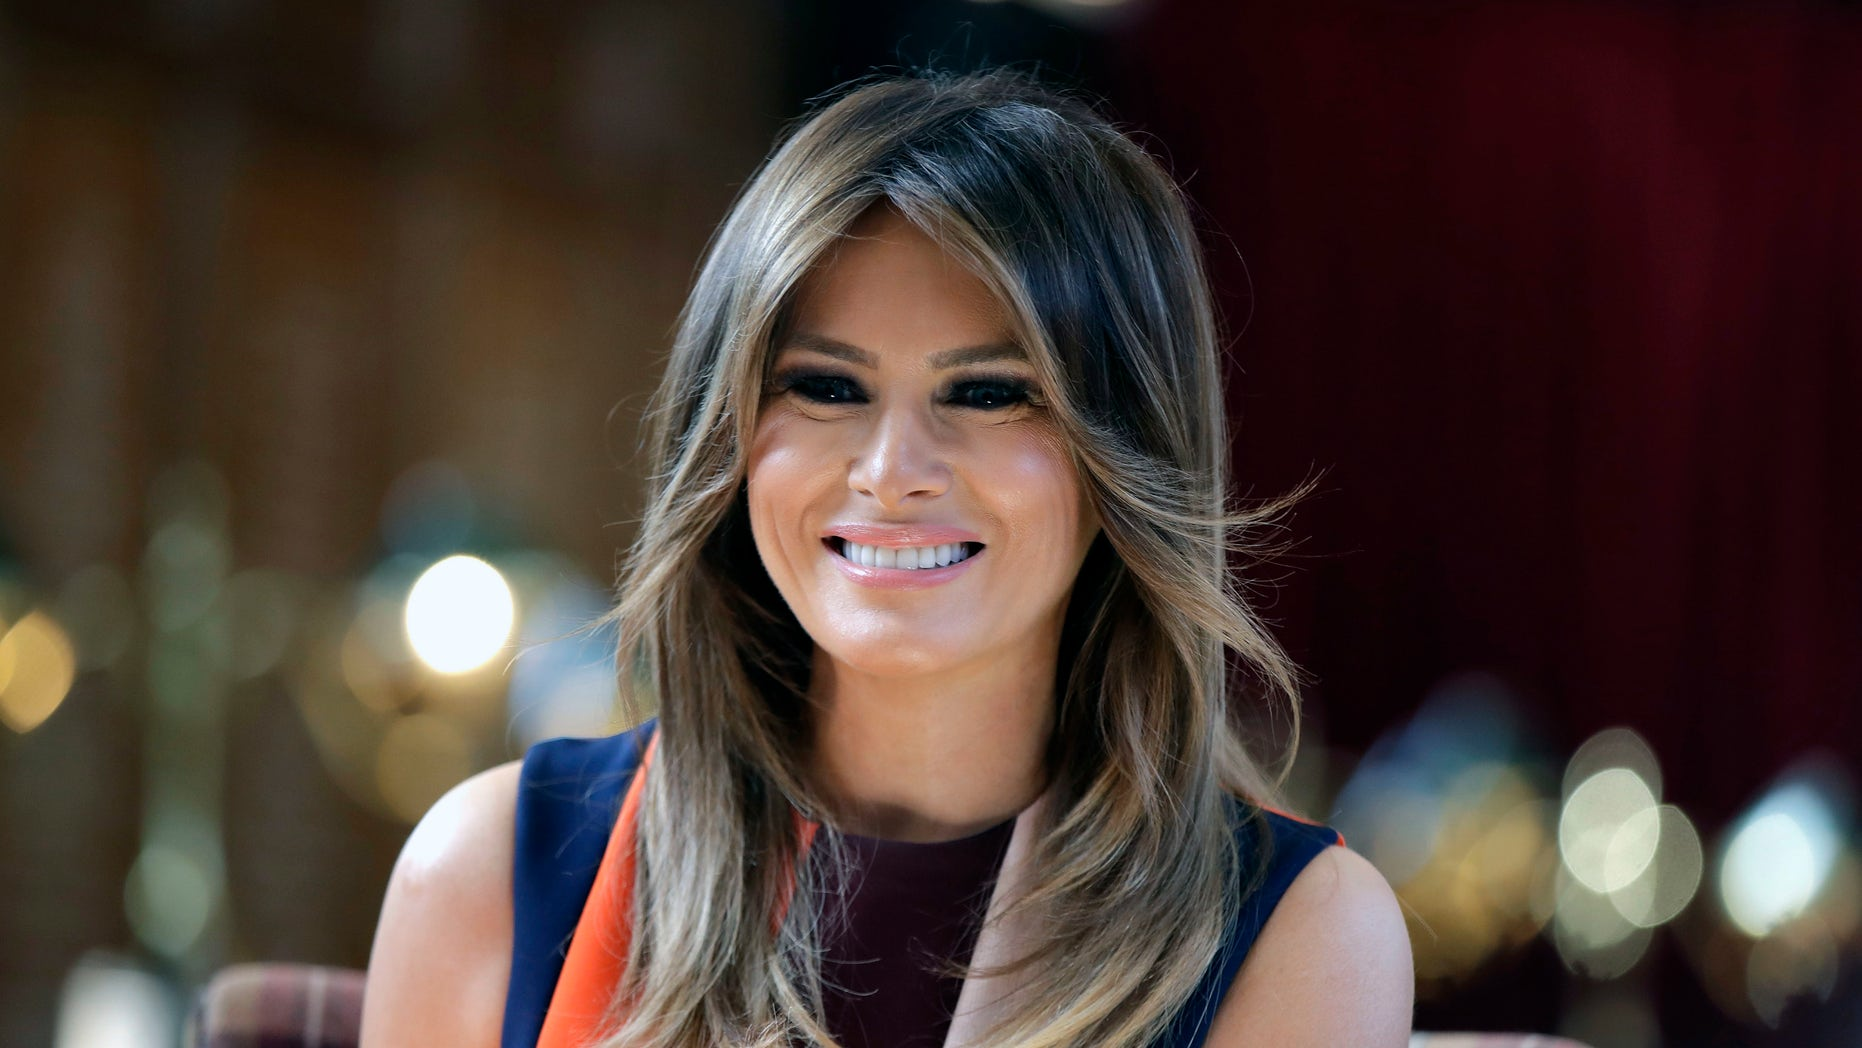 First lady's plane makes emergency landing in Washington